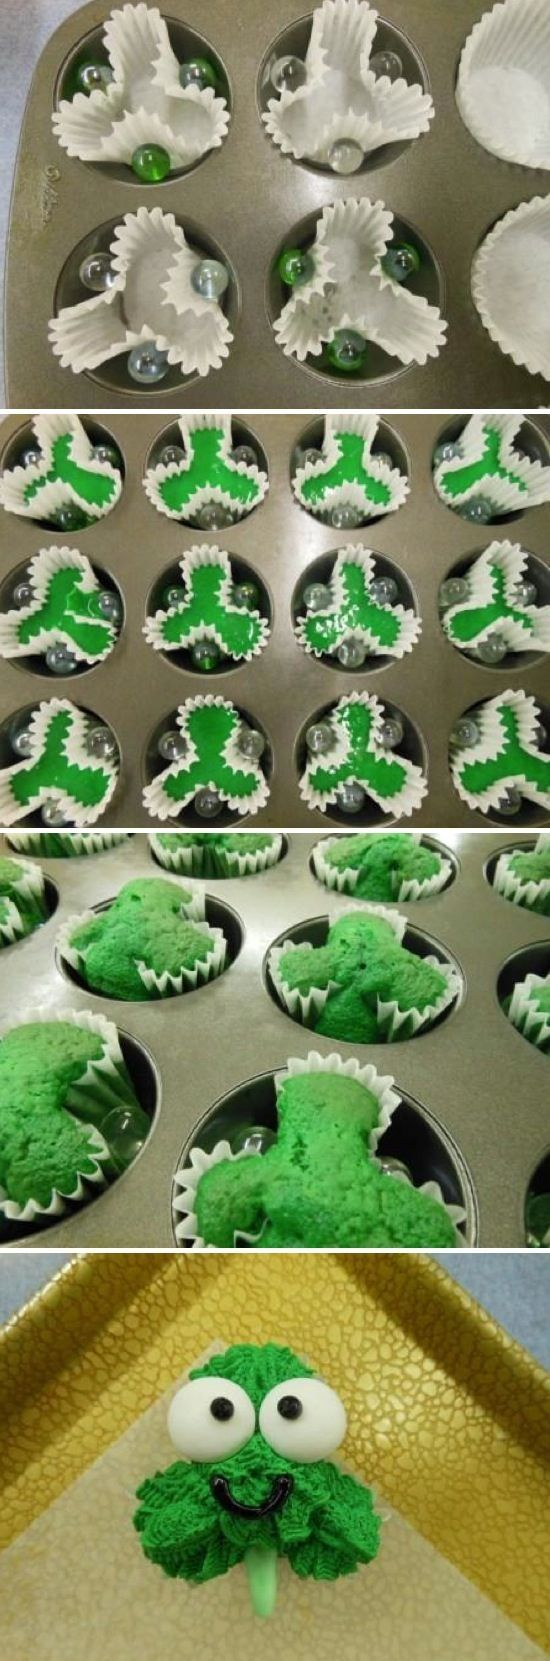 Shamrock Cupcakes Pictures, Photos, and Images for Facebook, Tumblr, Pinterest, and Twitter